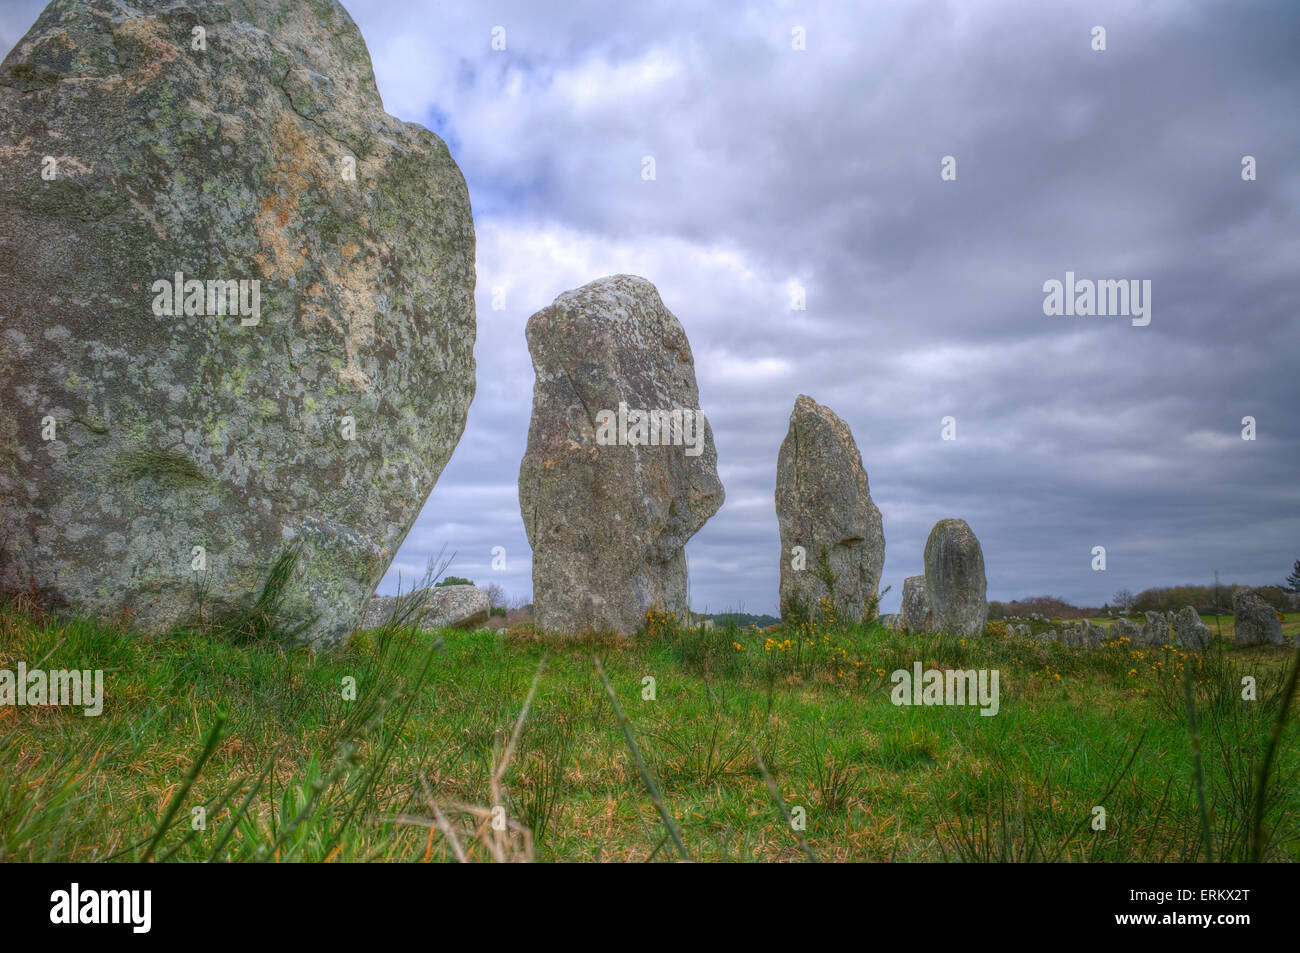 Megalithic stones in the Menec Alignment at Carnac, Brittany, France, Europe - Stock Image